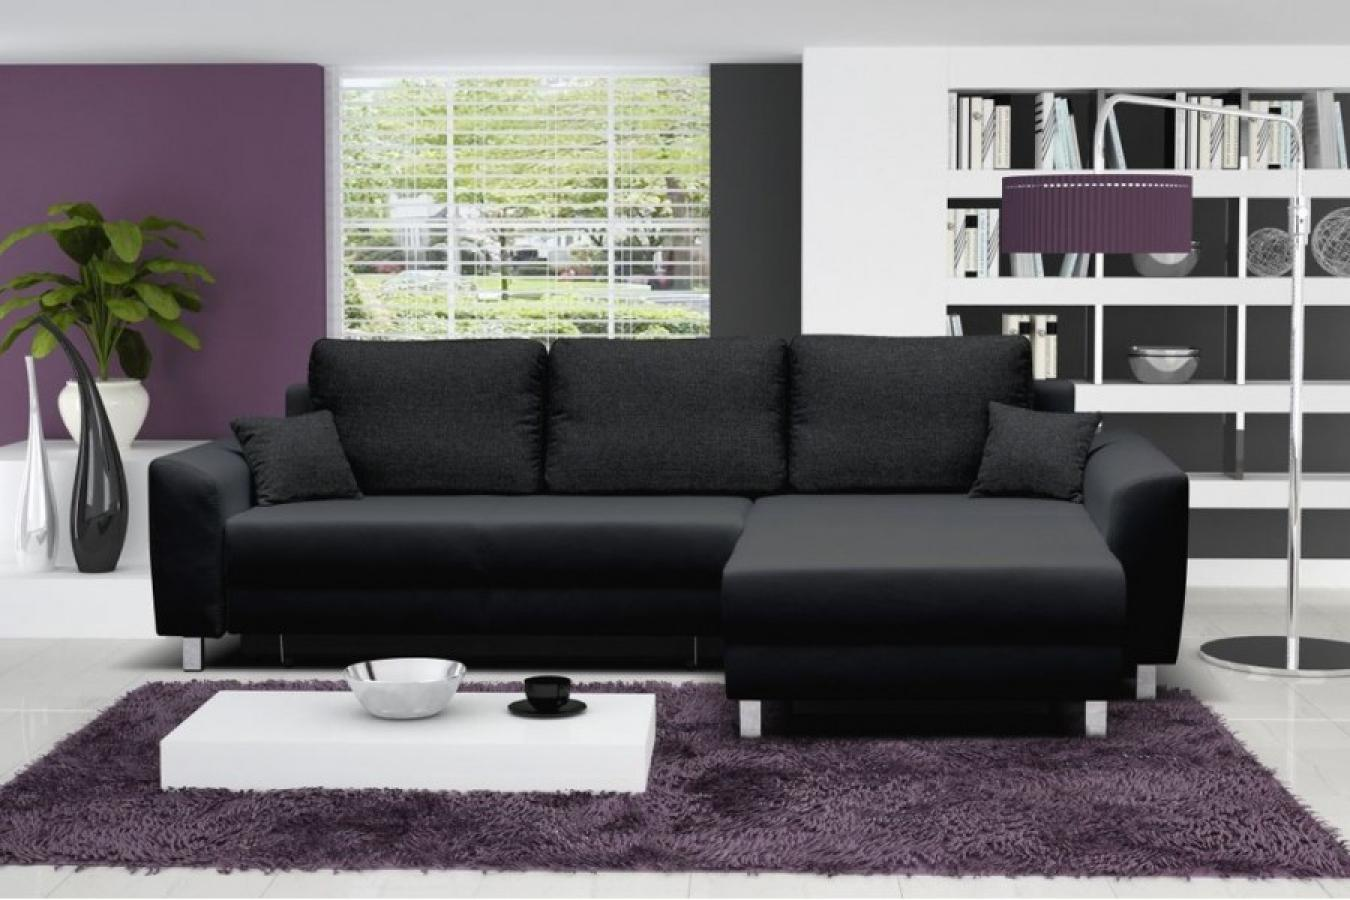 photos canap natuzzi havana. Black Bedroom Furniture Sets. Home Design Ideas